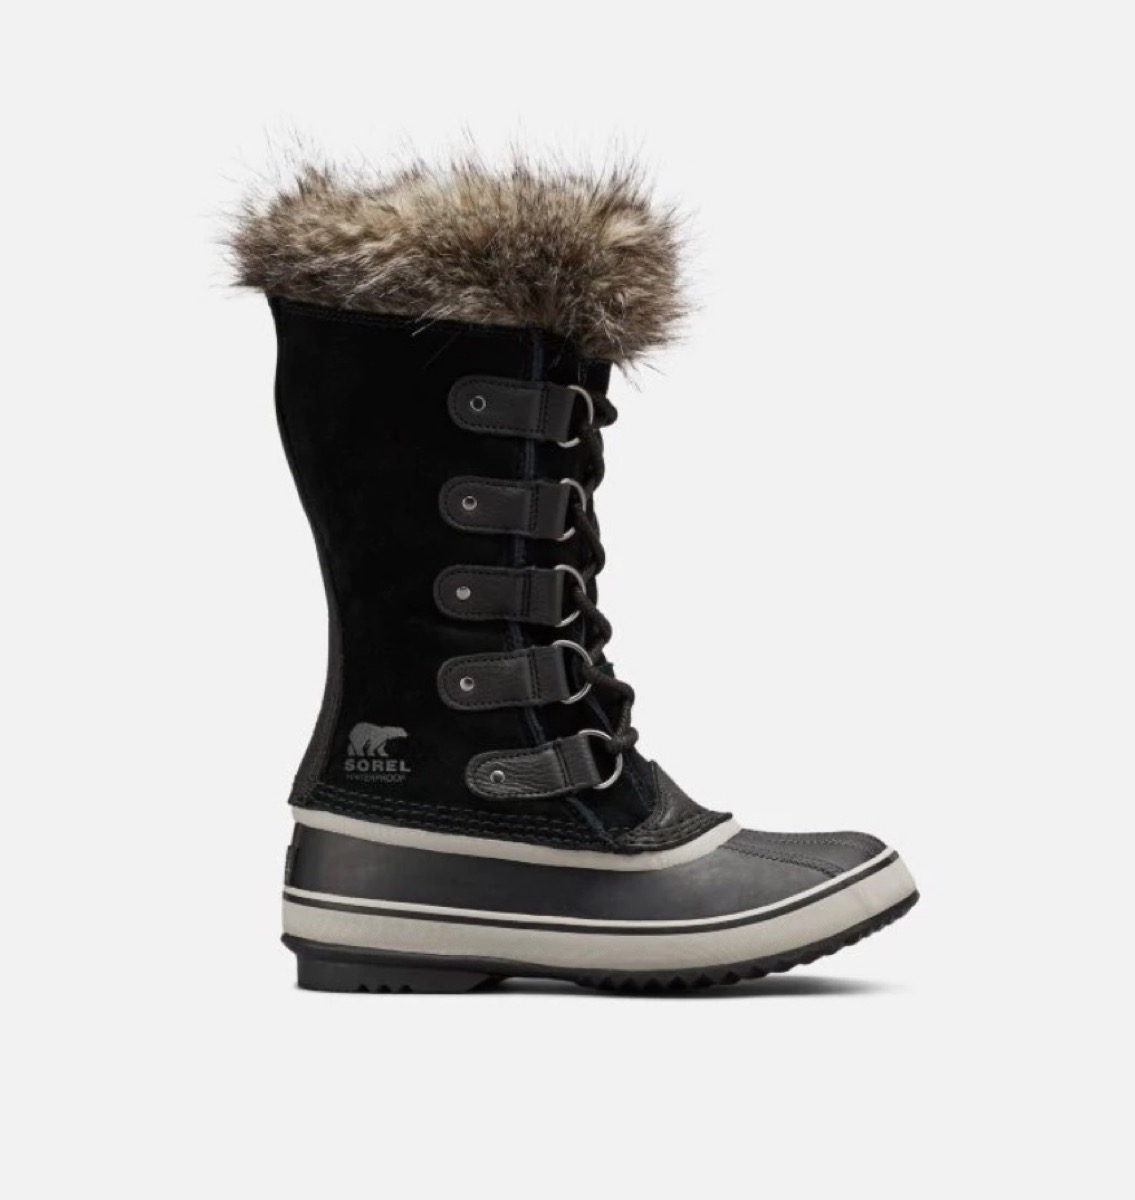 black waterproof boots topped with gray faux fur